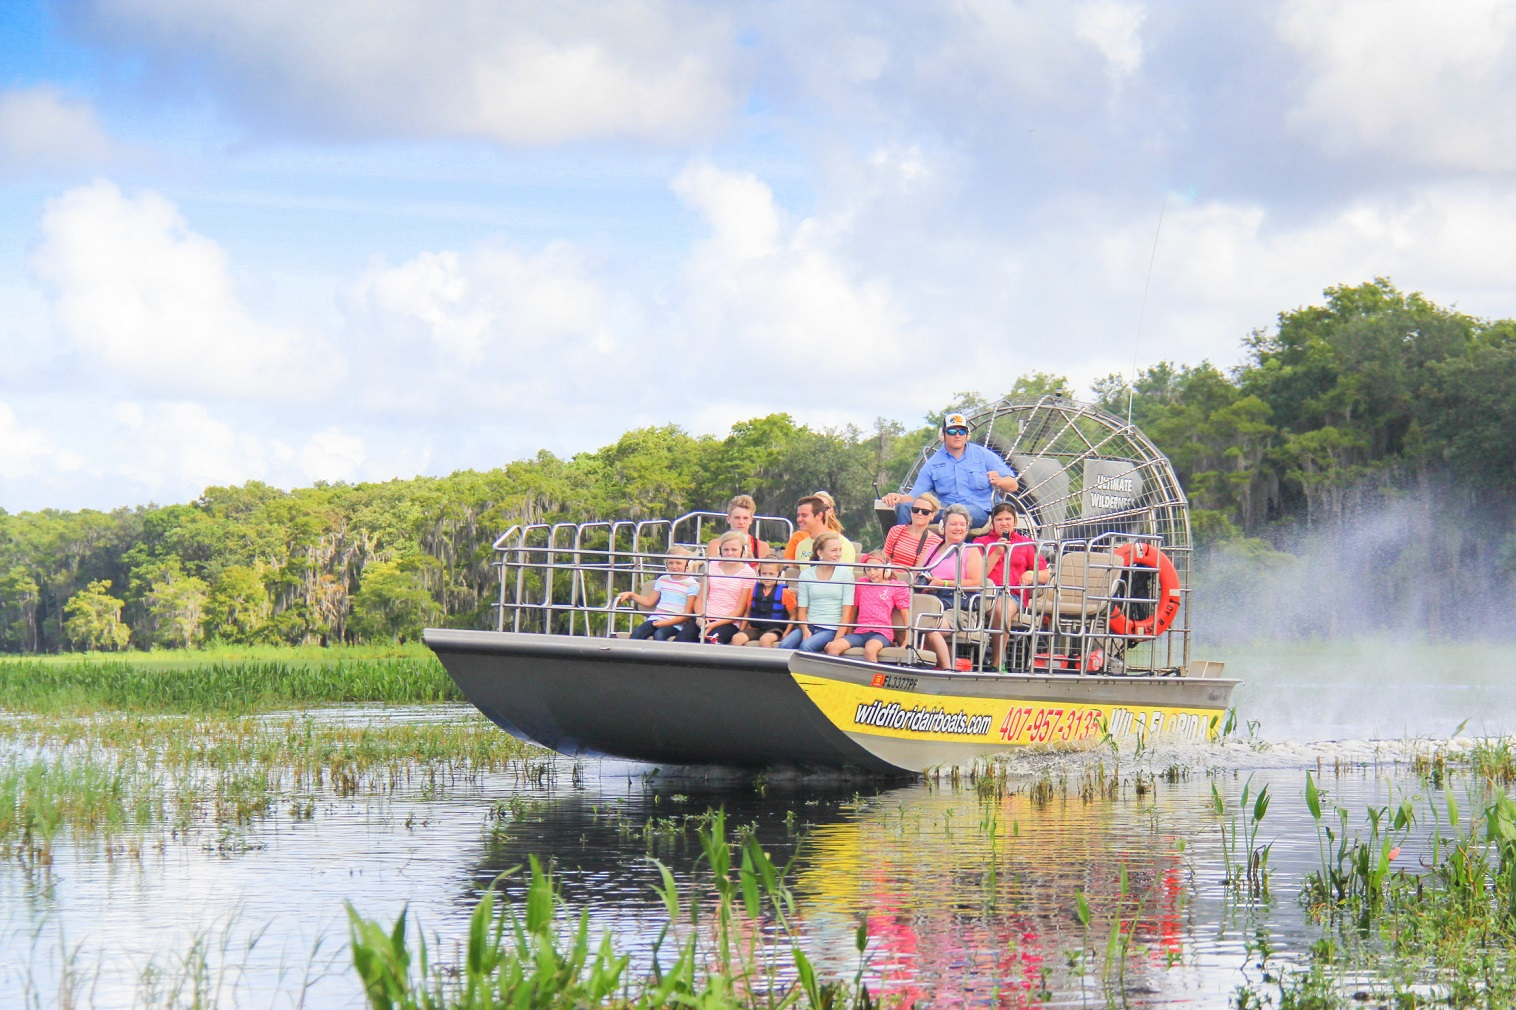 People across the US can now celebrate National Airboat Day on February 19 and National Gator Day on May 29.